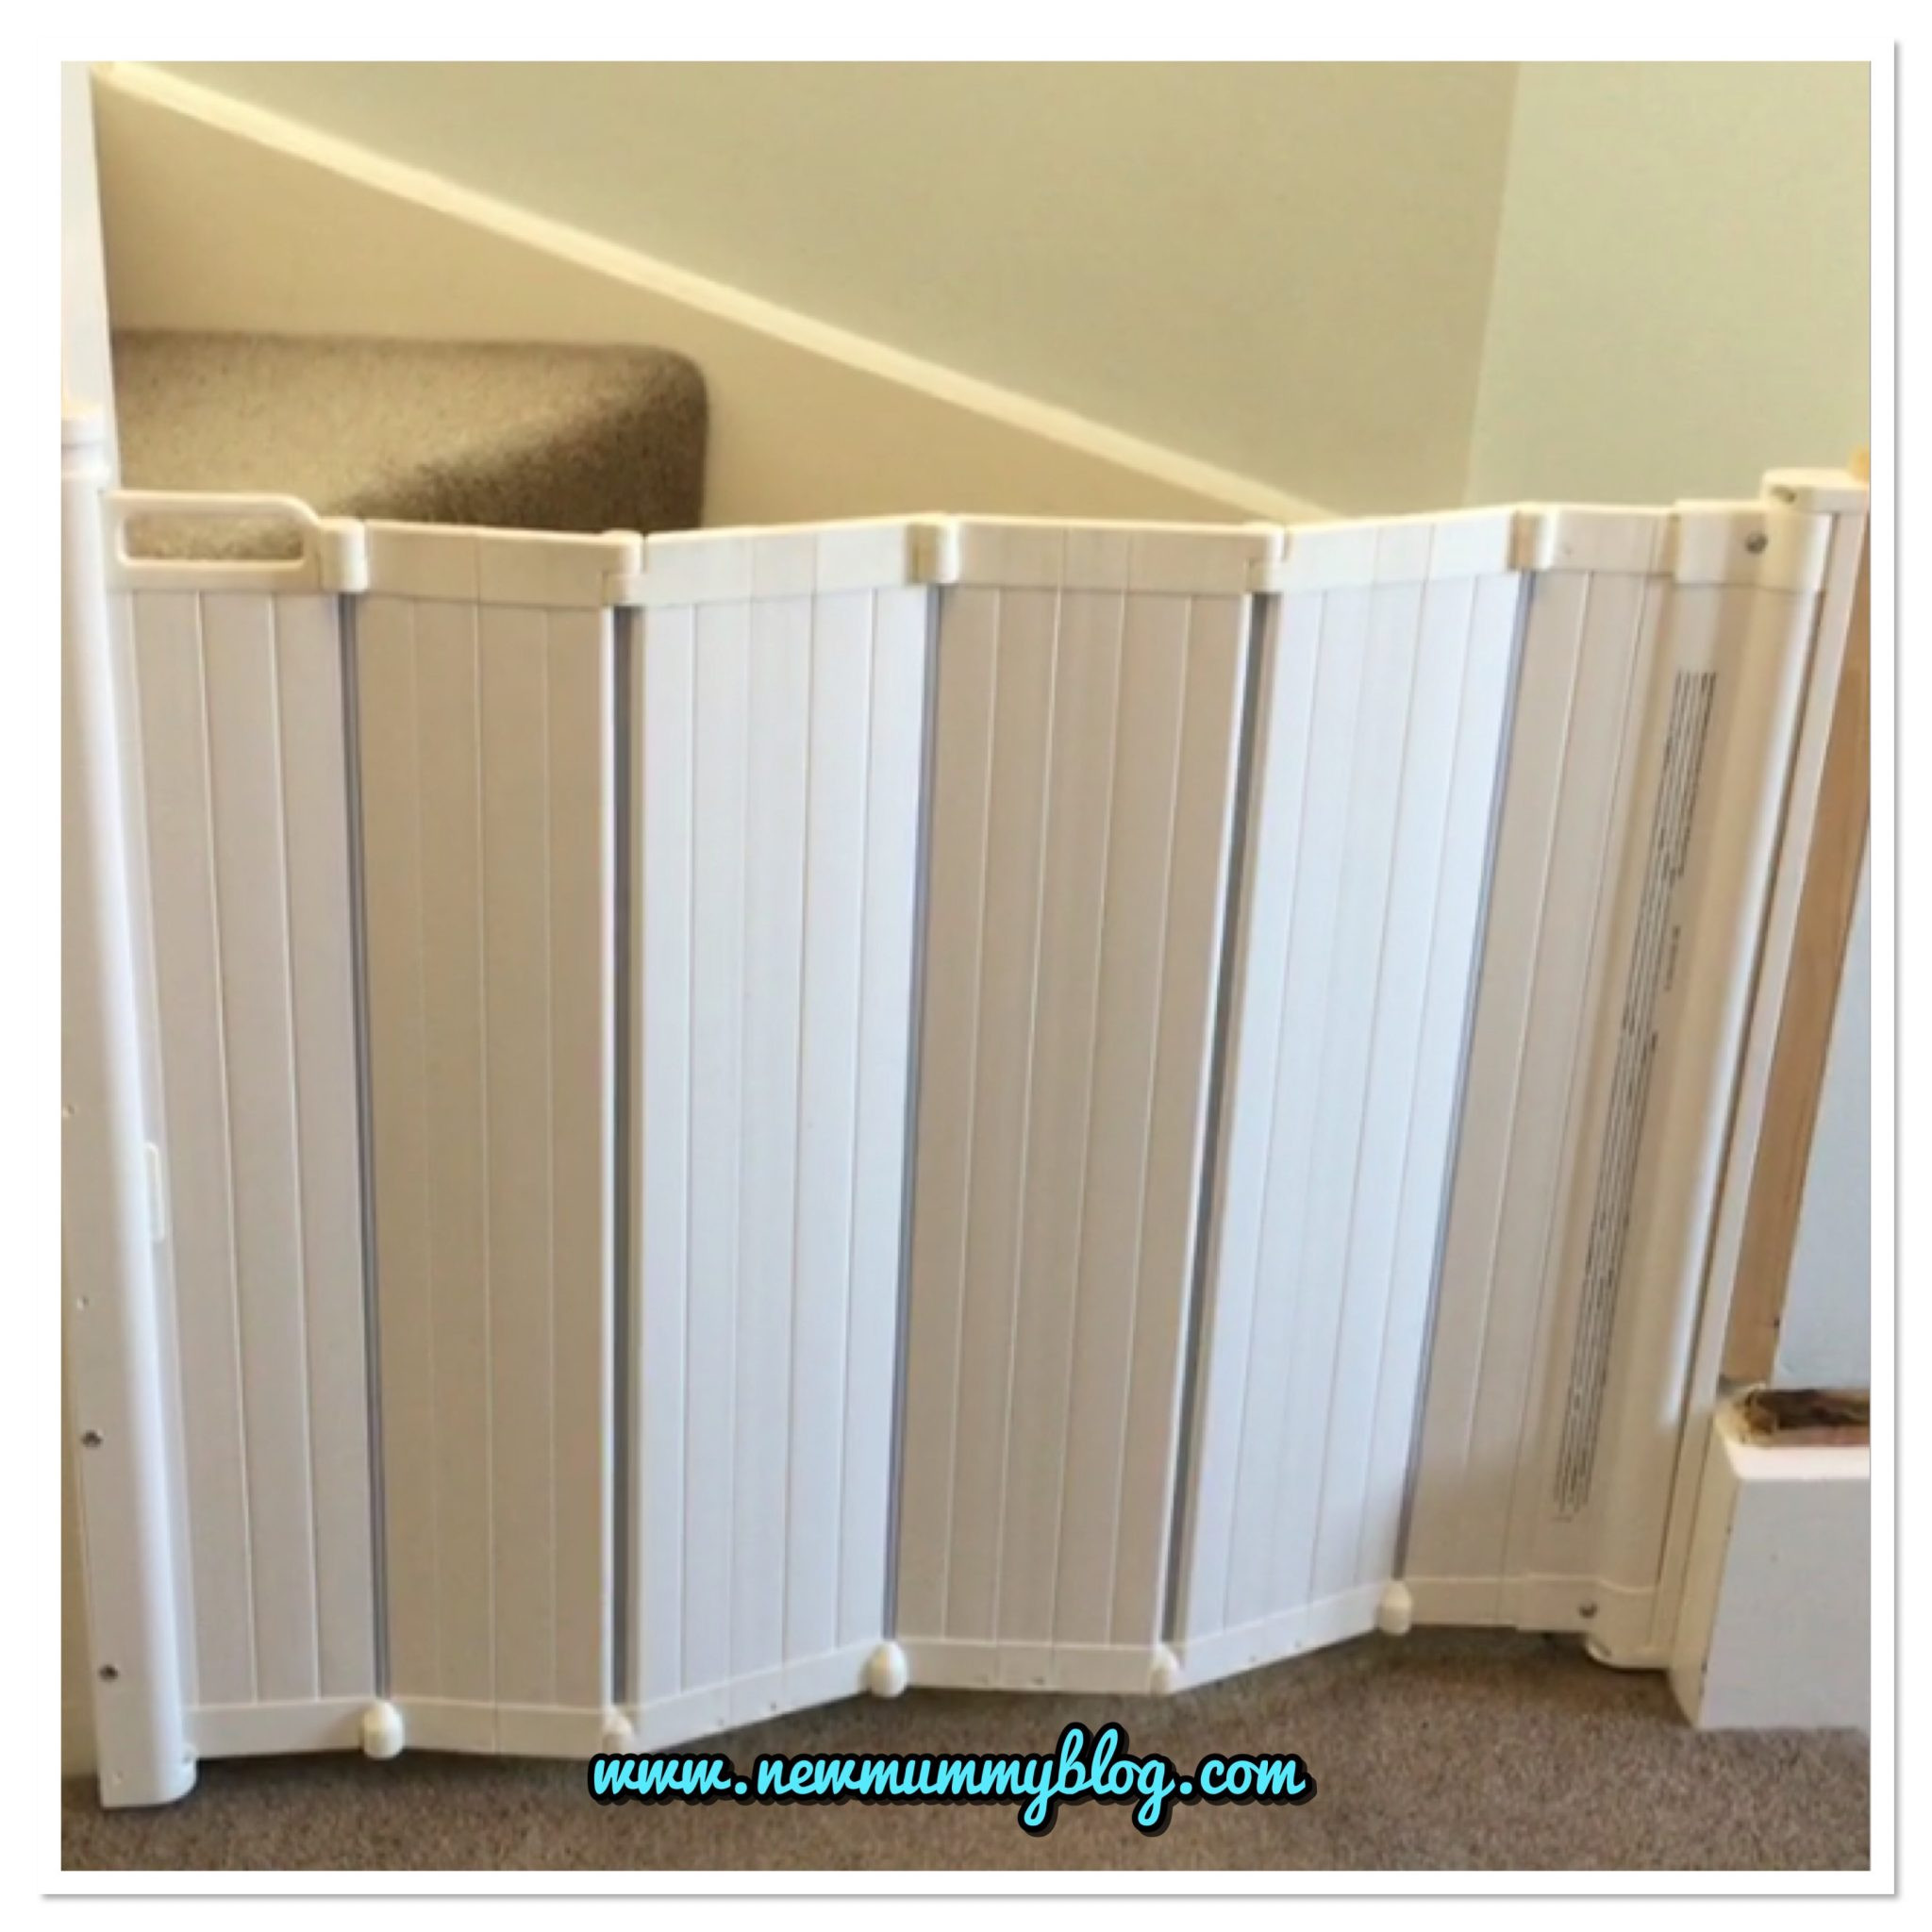 Best ideas about DIY Retractable Baby Gate . Save or Pin BabyDan Retractable Stair Gate Best baby stair gate Now.